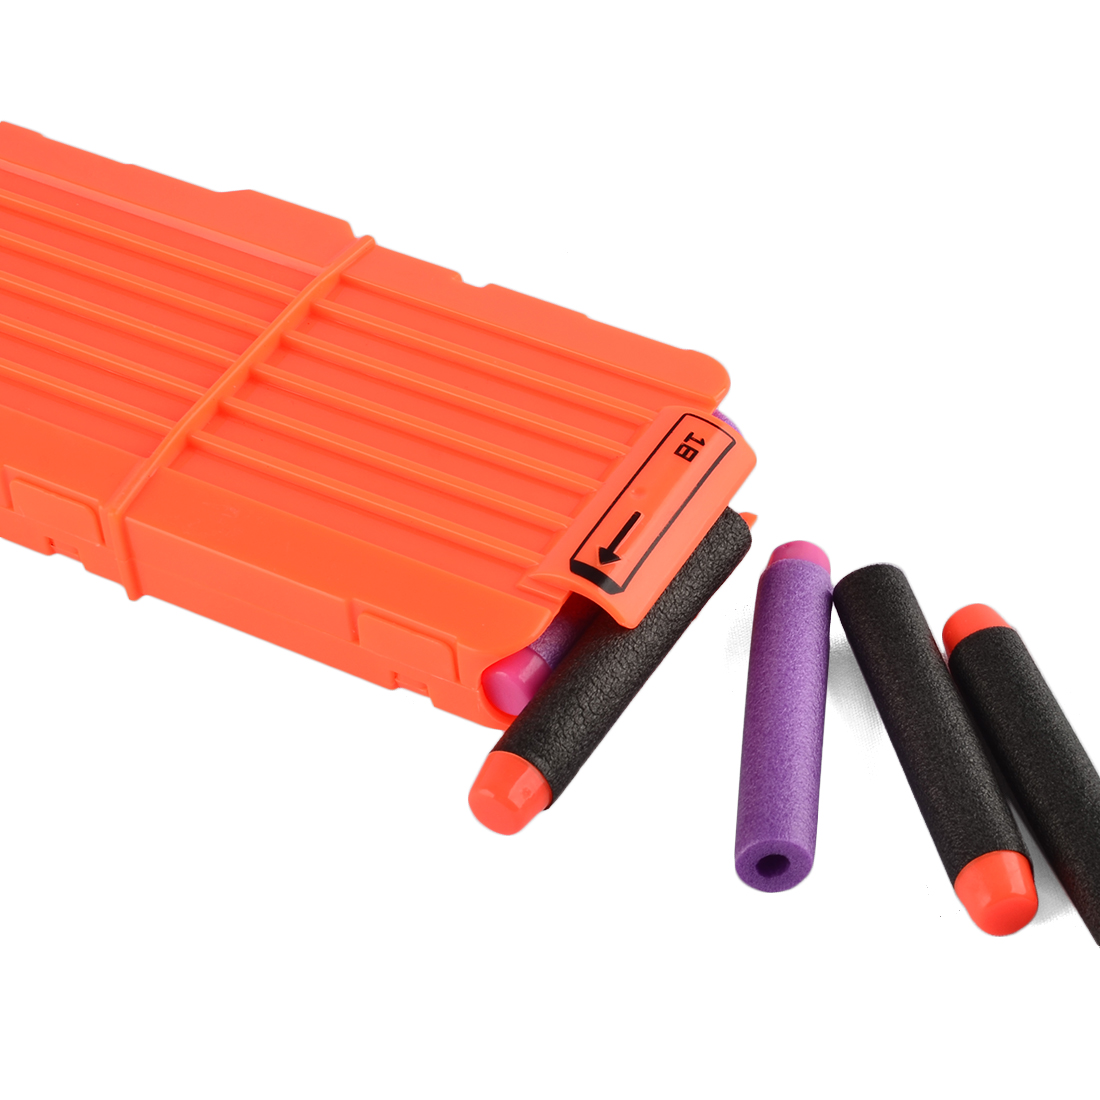 Surwish-Soft-Bullet-Clips-For-Nerf-Toy-Gun-18-Bullets-Ammo-Cartridge-Dart-For-Nerf-Gun-Clips-Orange-4